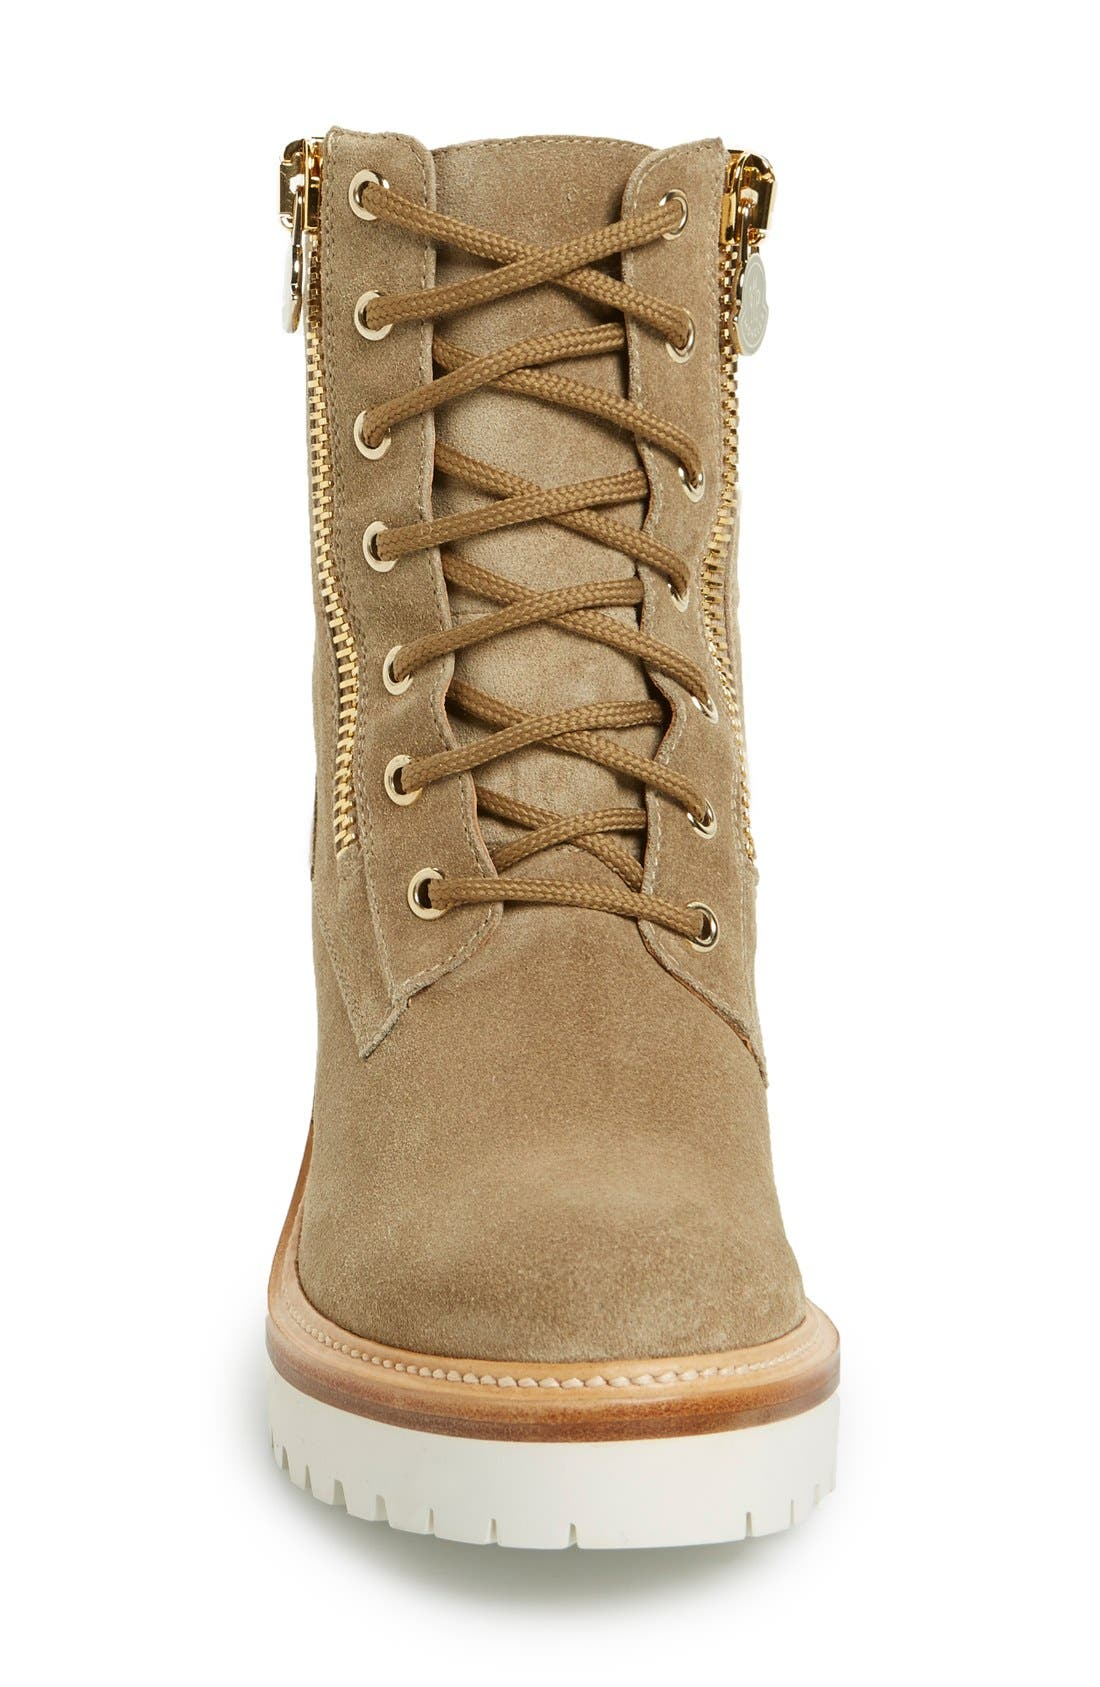 'Viviane' Hiker Boot,                             Alternate thumbnail 3, color,                             Brown Suede Calfskin